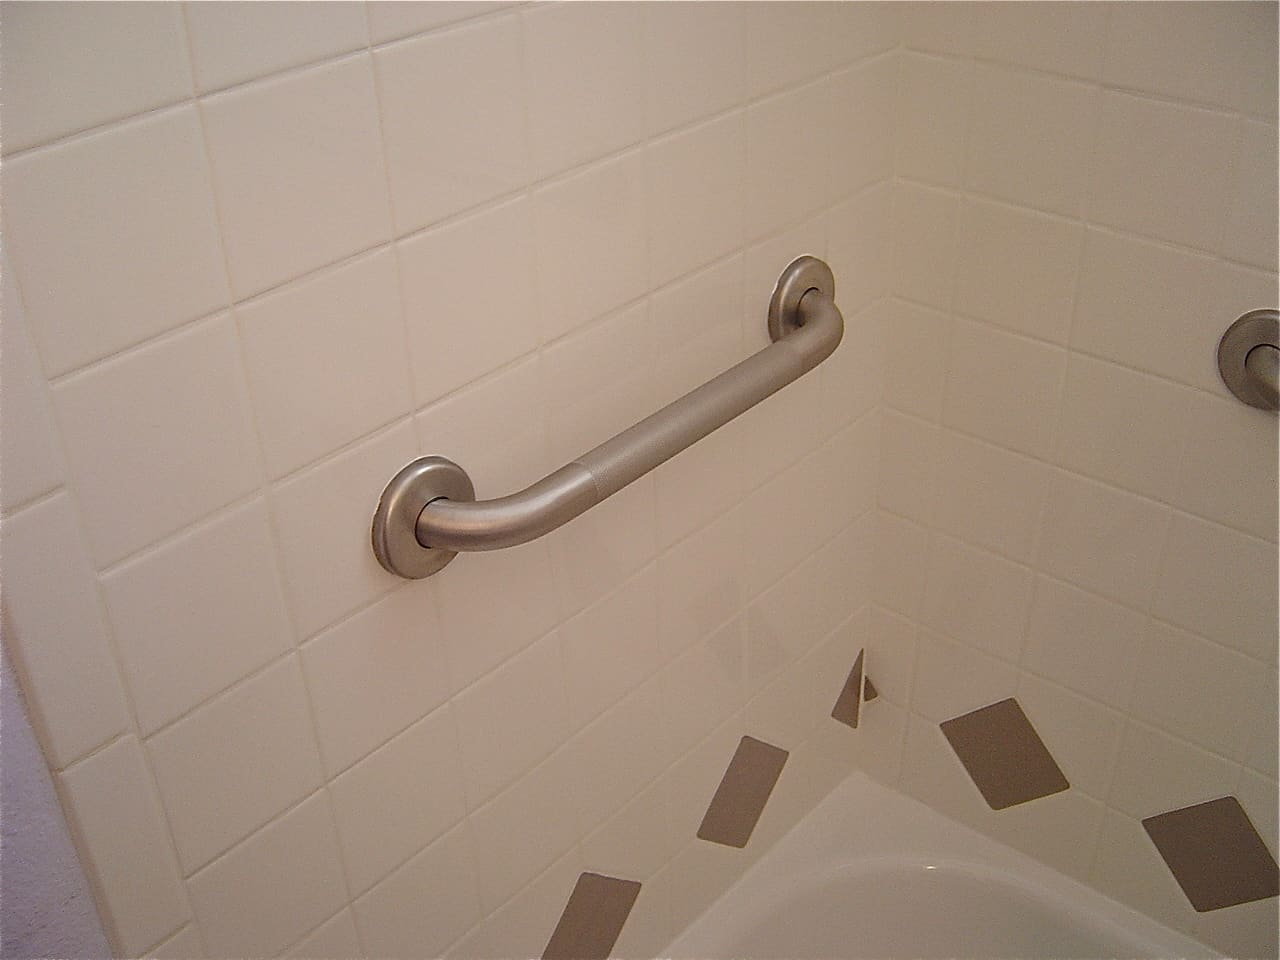 Bathtub Grab Bar Dimensions grab bars for bathrooms: 3 important things to know